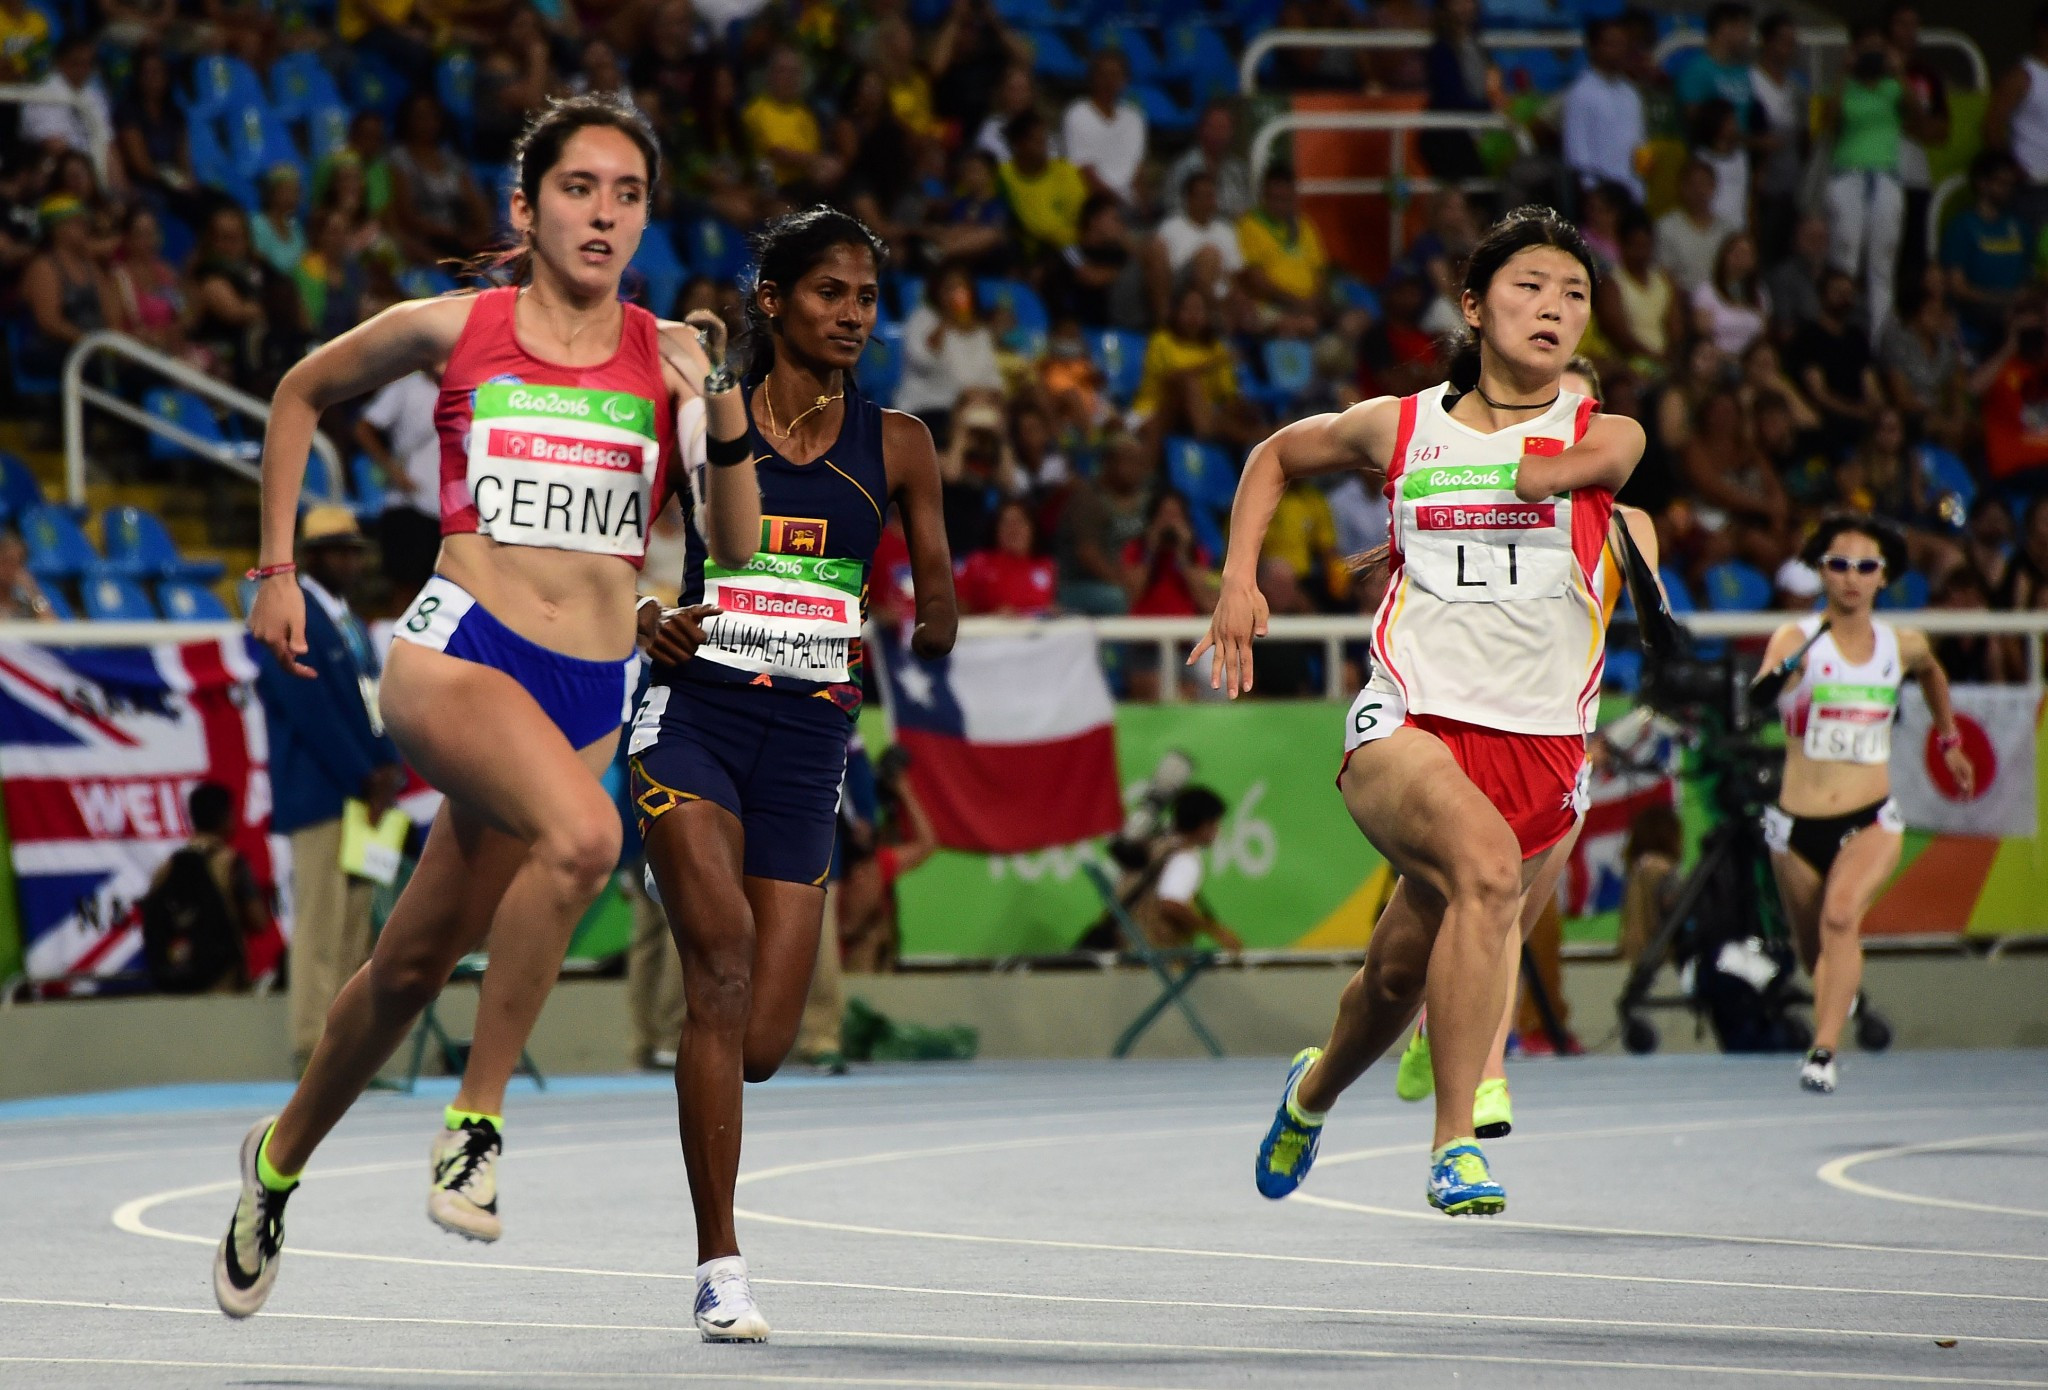 T47 sprinter Amanda Cerna of Chile is also set to compete in Nottwil ©Getty Images